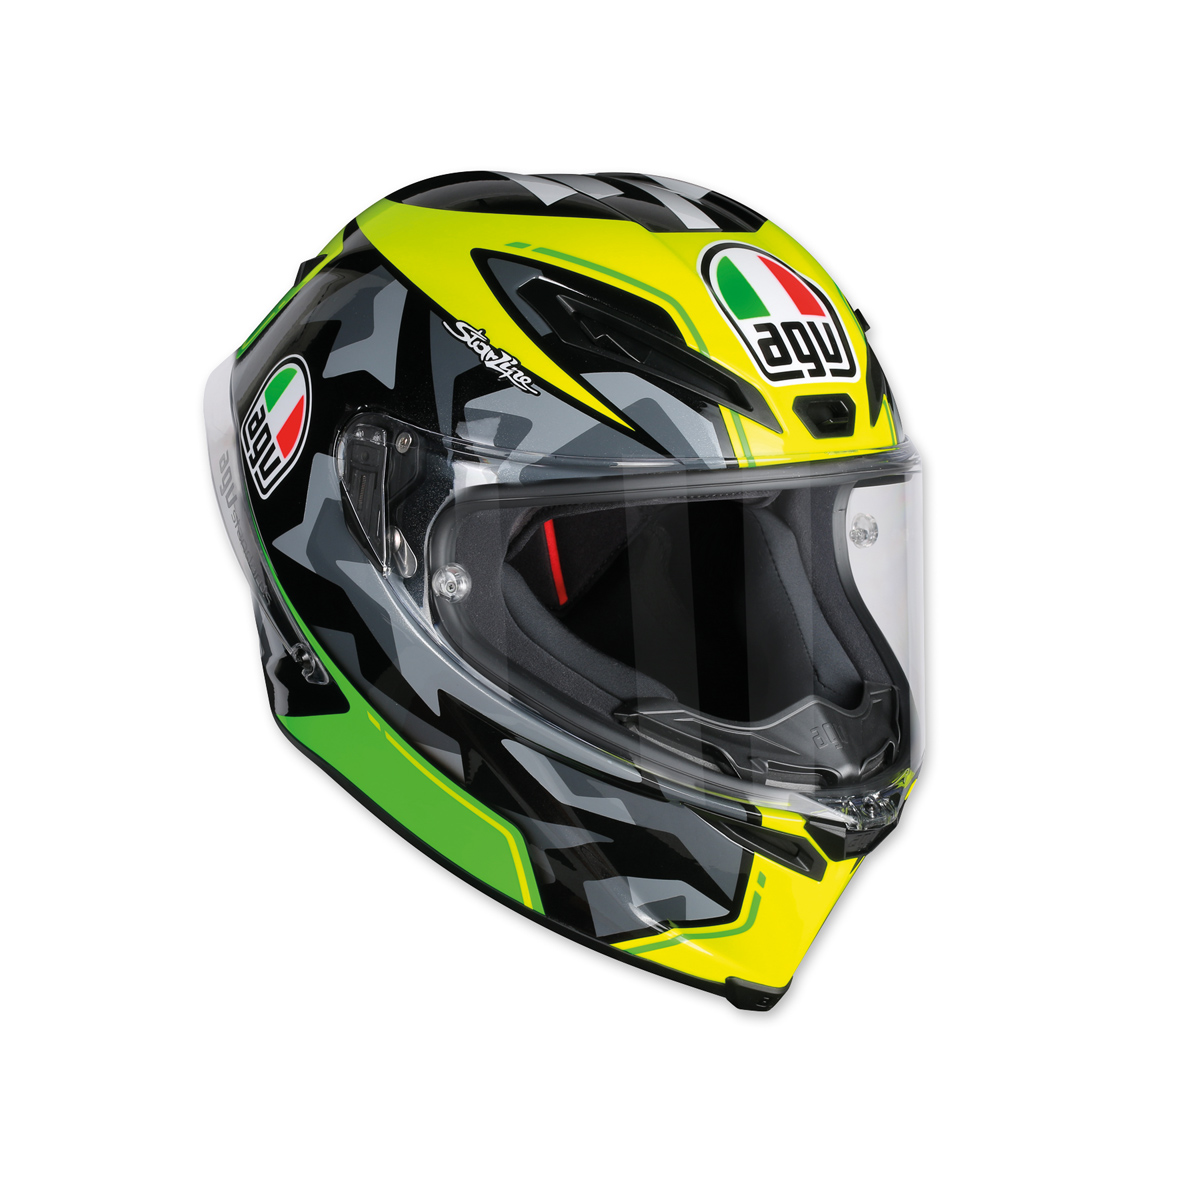 agv corsa r espargaro full face helmet 903 865 j p cycles. Black Bedroom Furniture Sets. Home Design Ideas